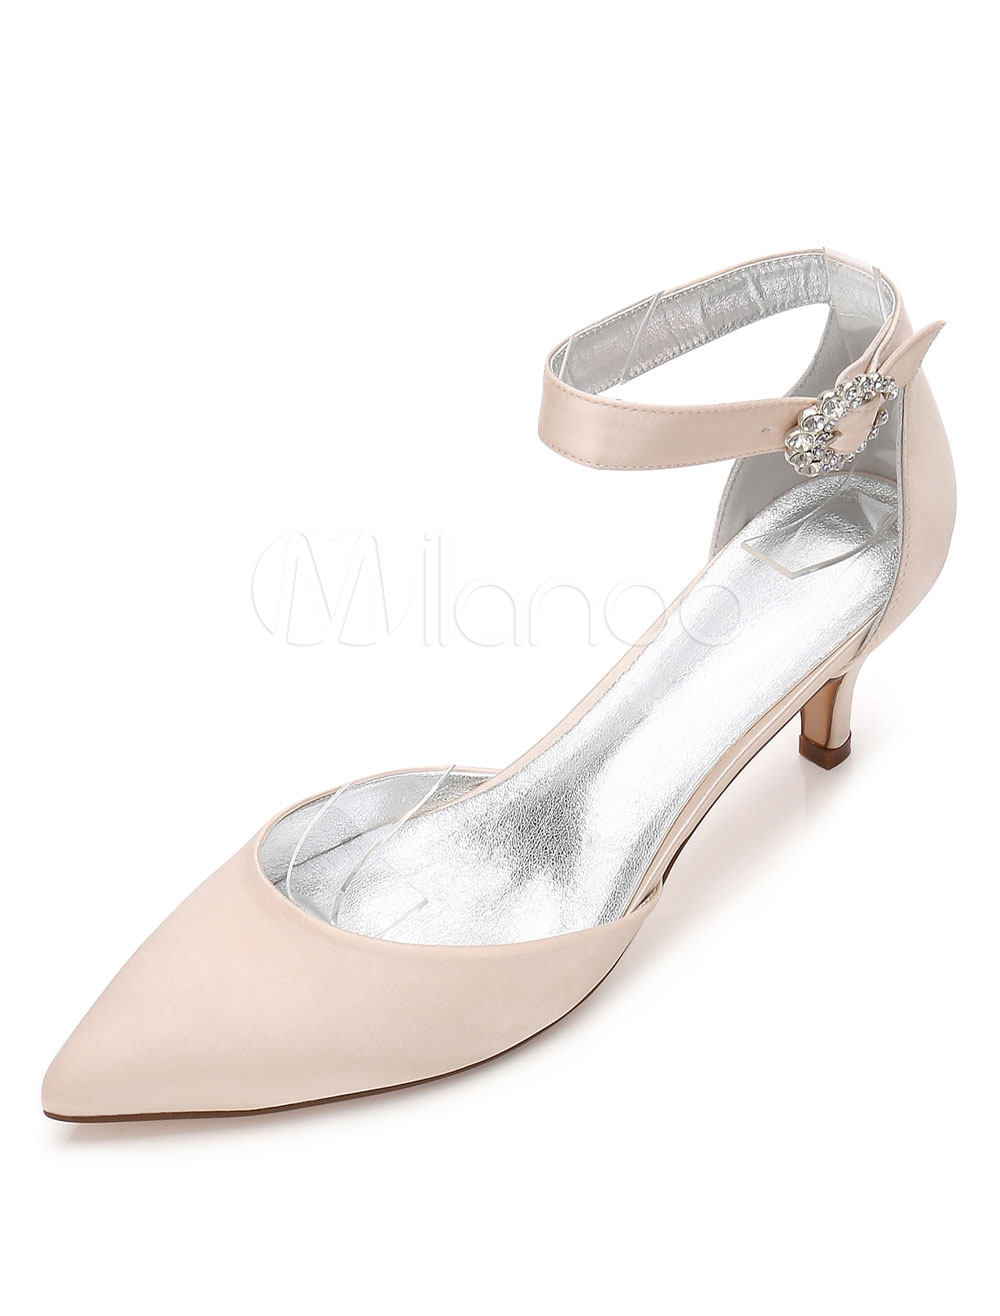 Buy White Wedding Shoes Satin Pointed Toe Rhinestones Ankle Strap Kitten Heel Bridal Shoes for $47.49 in Milanoo store